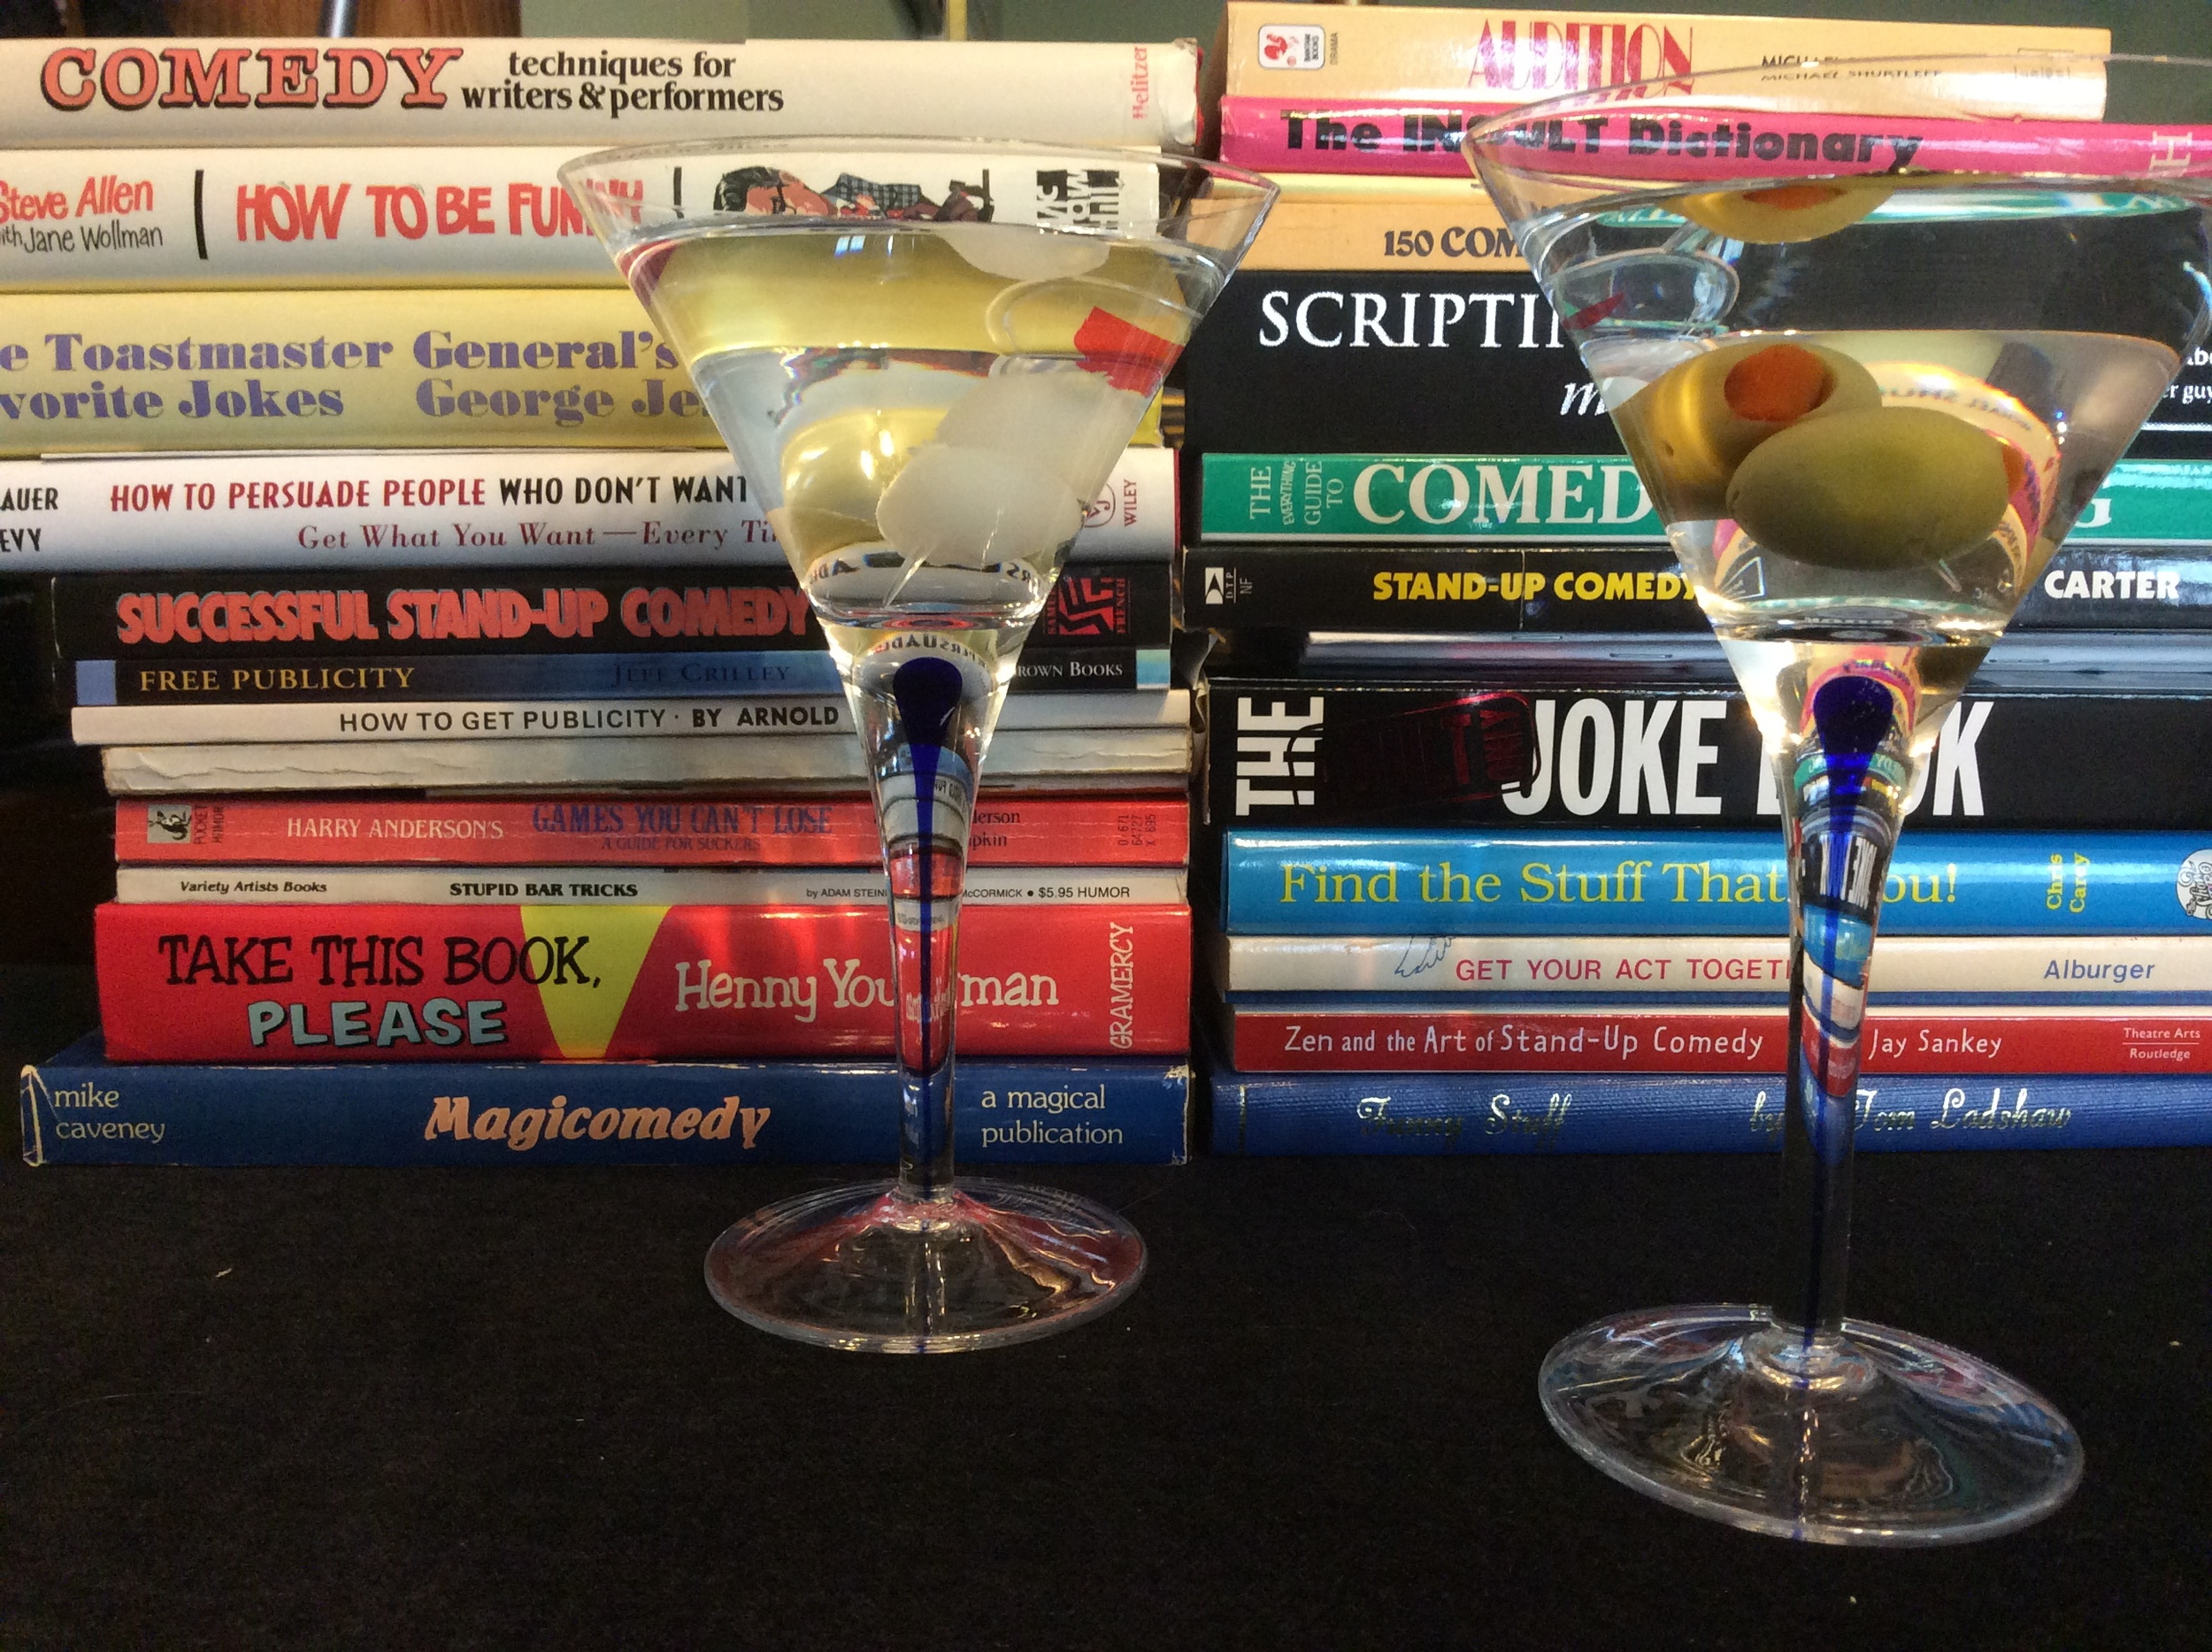 A little light reading during the cocktail hour. What's on your shelf?